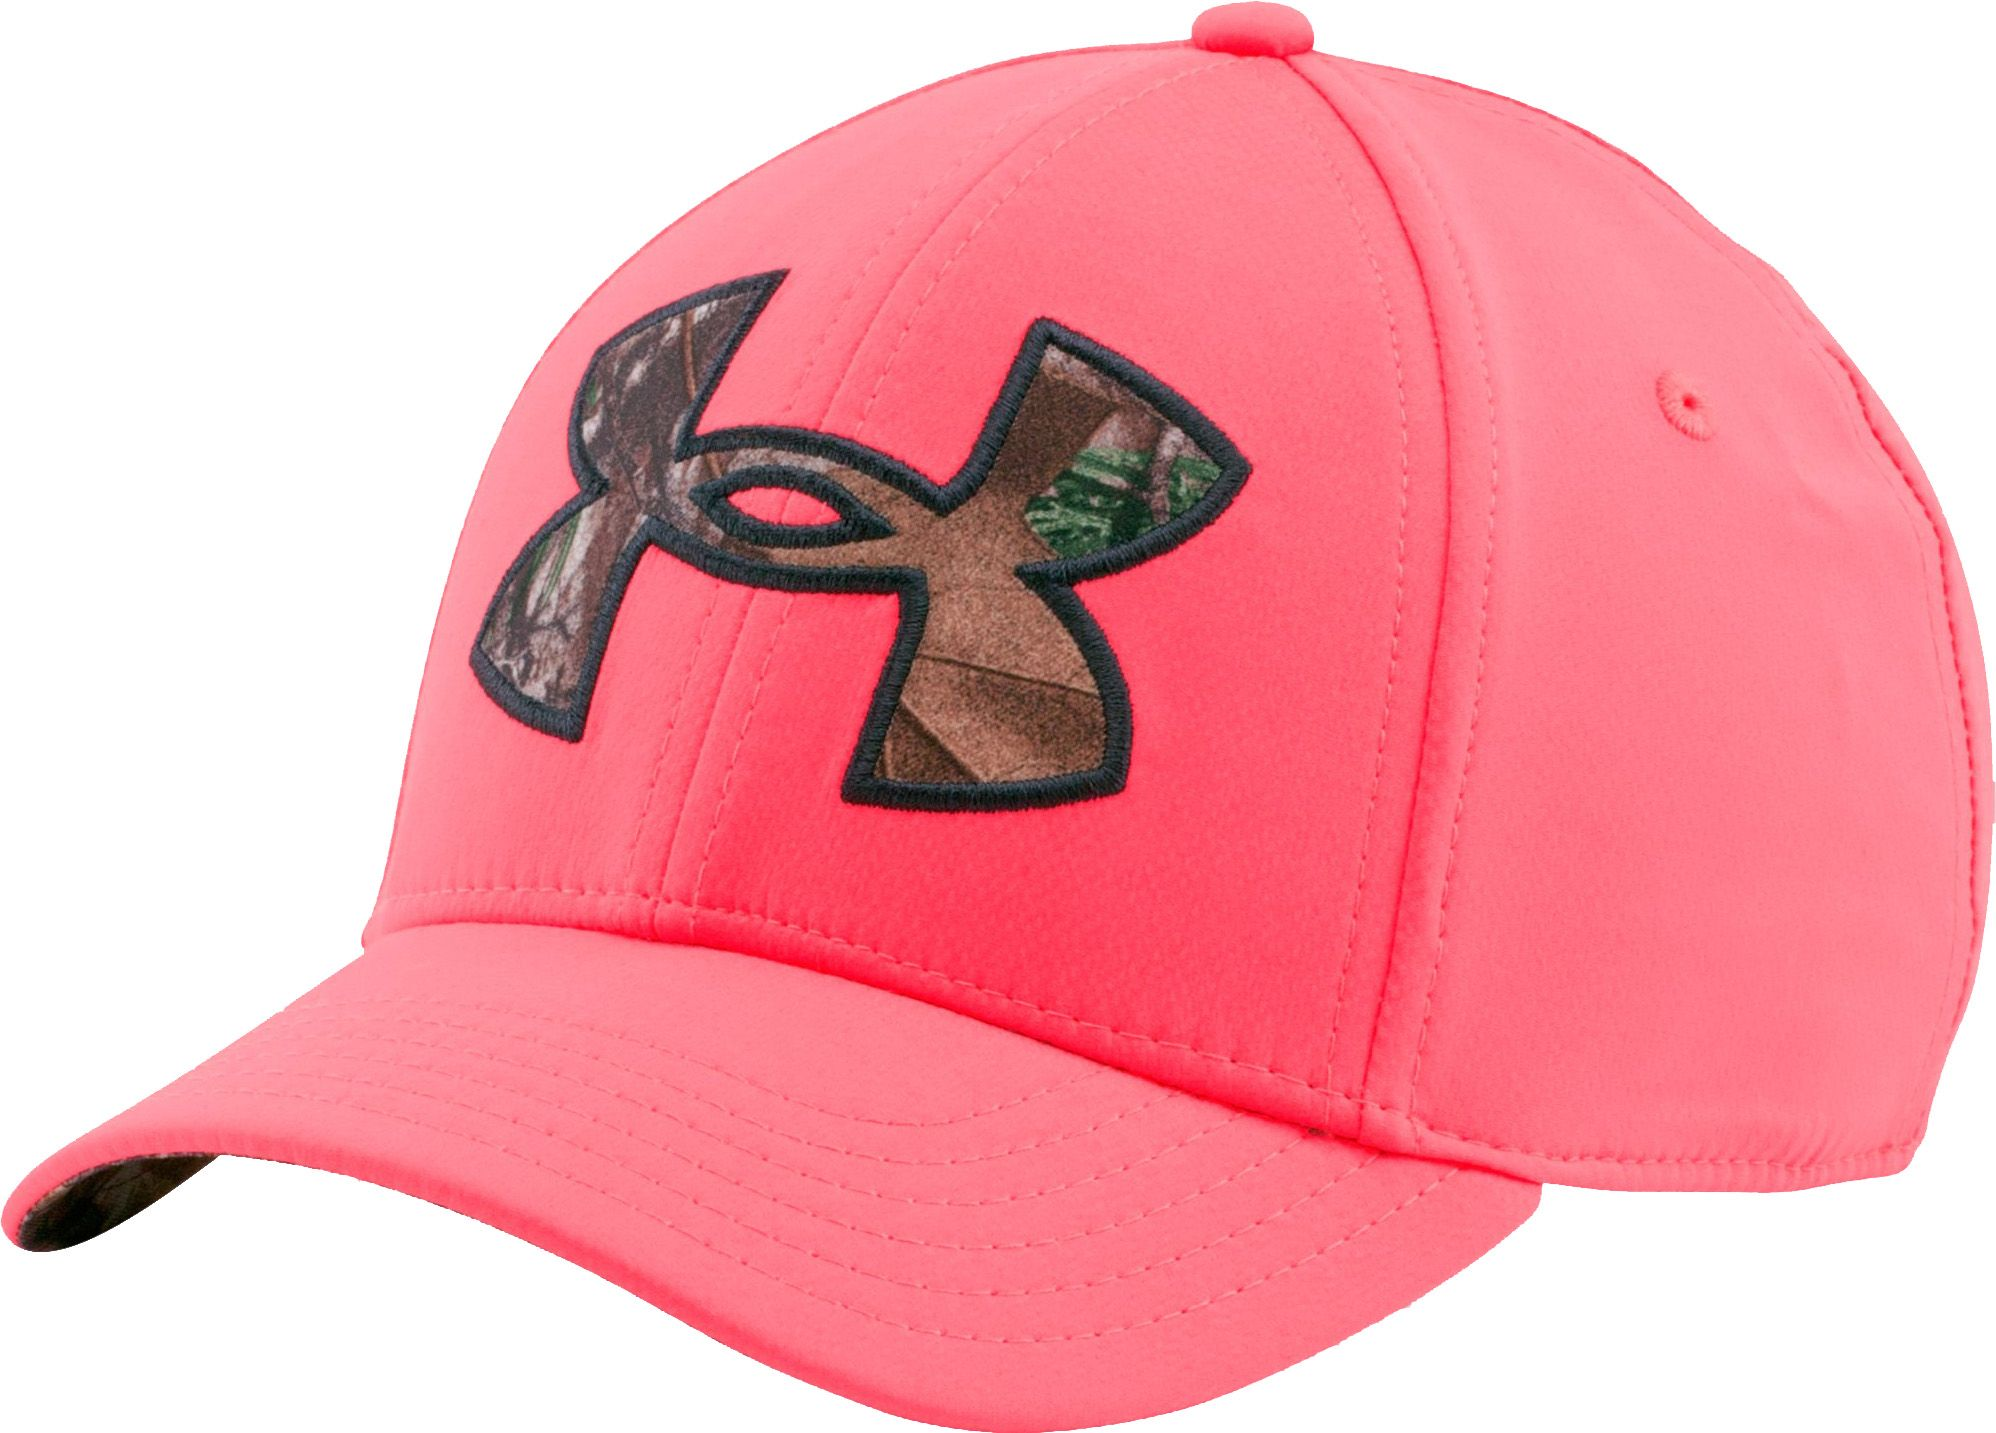 Under Armour Women's Caliber 2.0 Stretch Fit Hat, Size: Medium/Large, Pink thumbnail